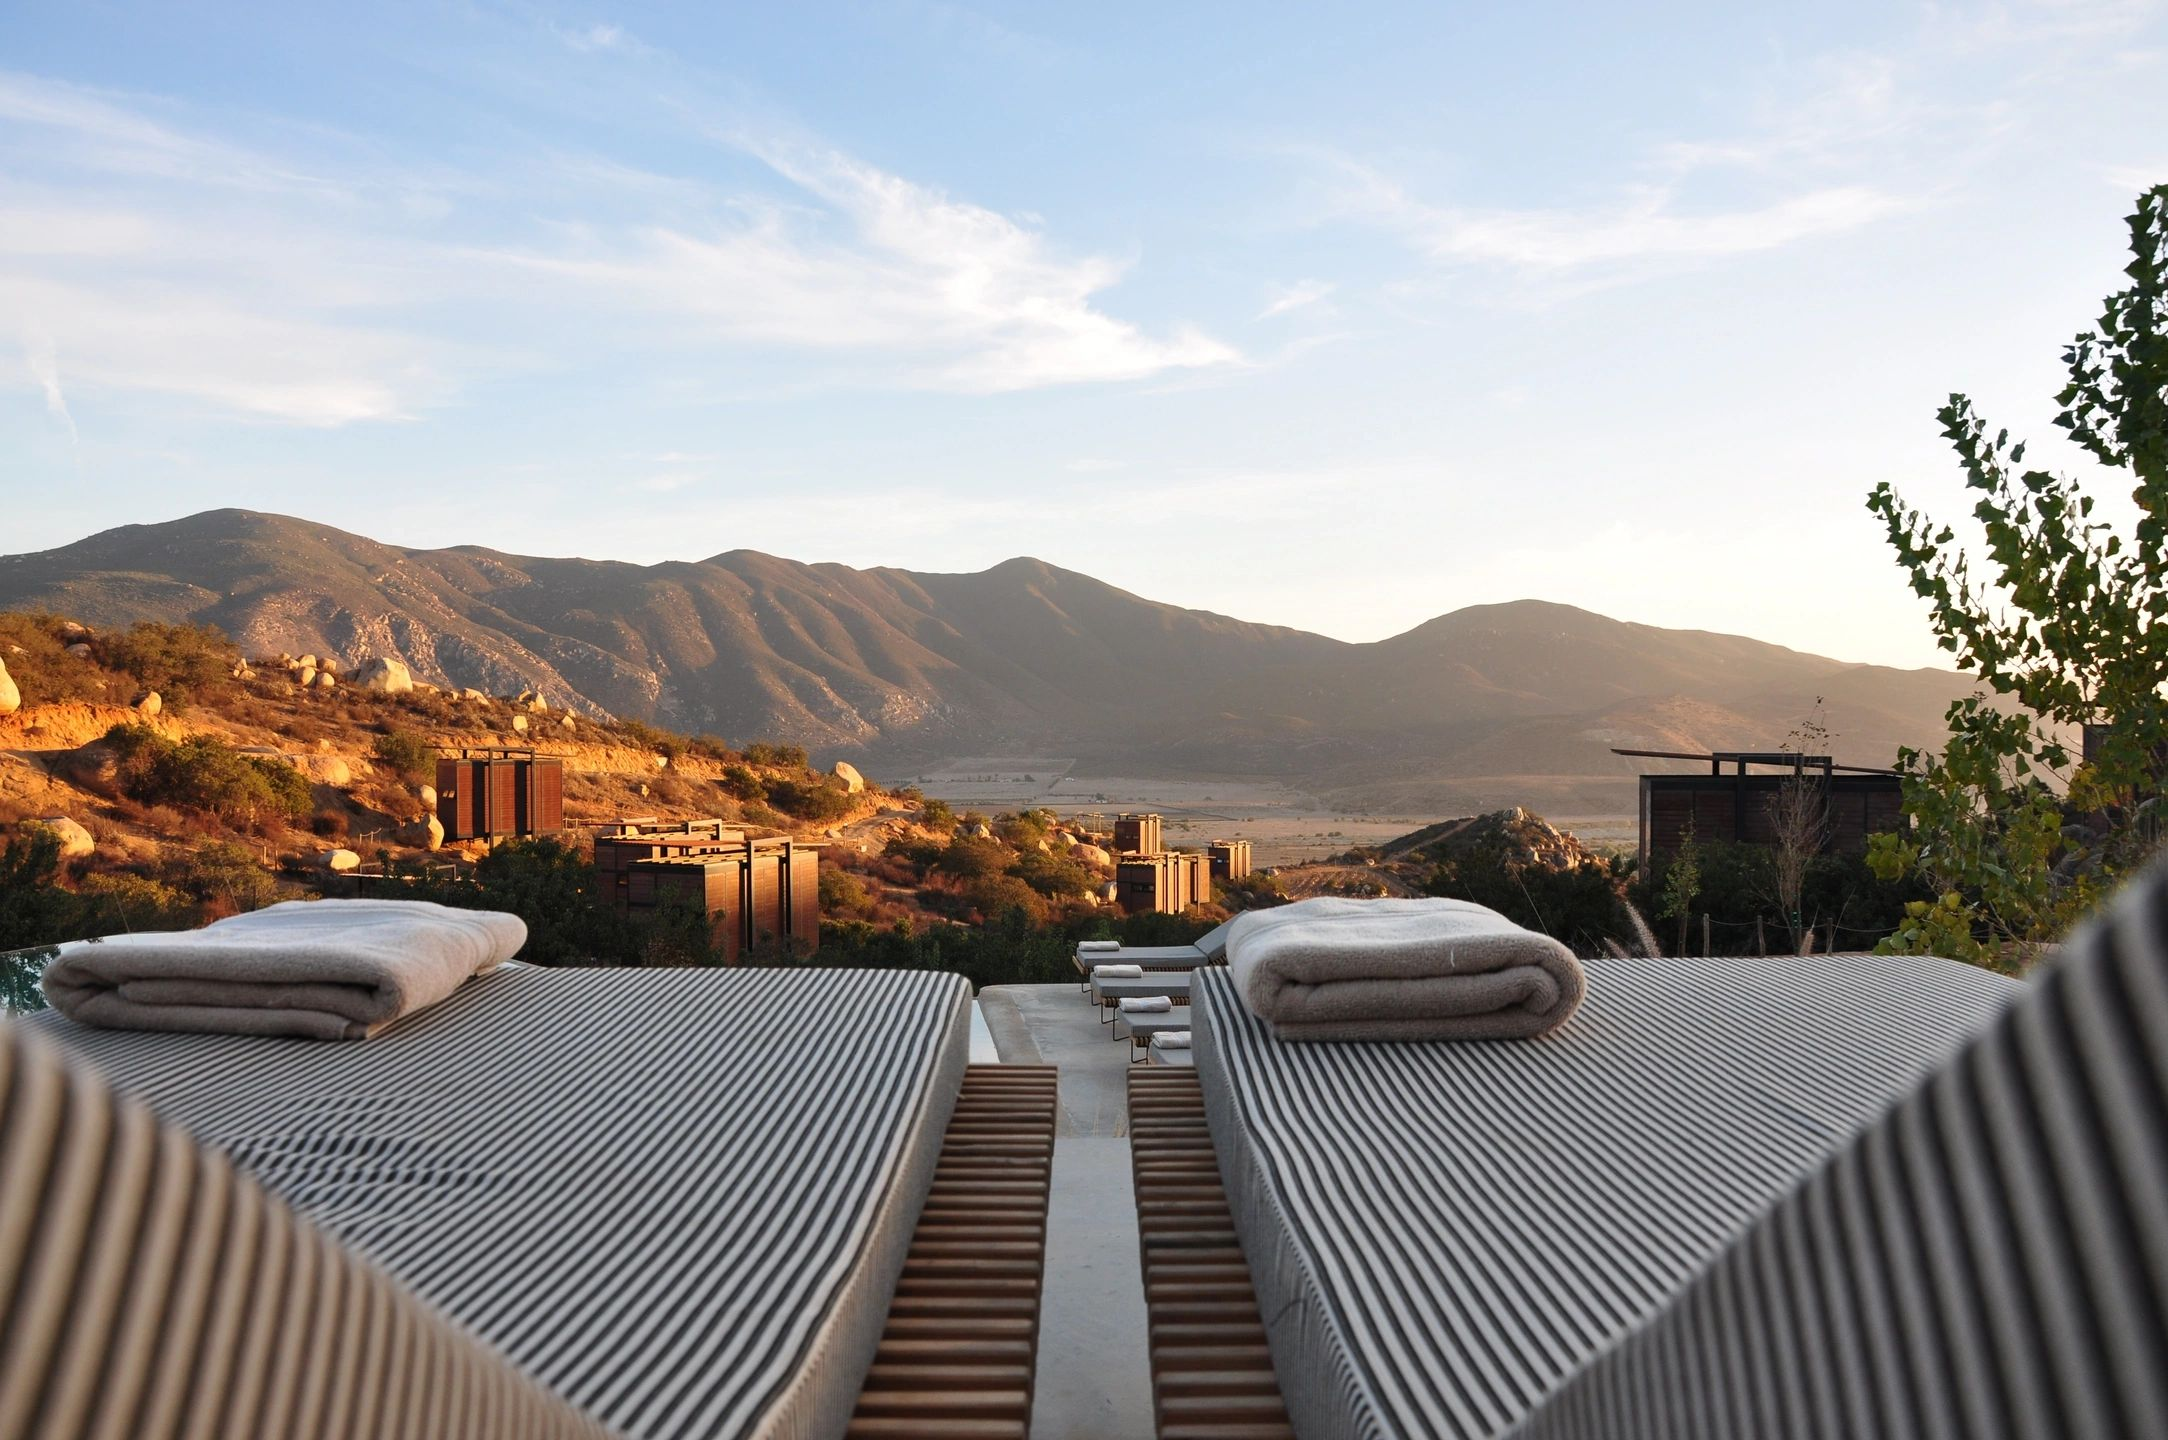 sun beds with view of mountains